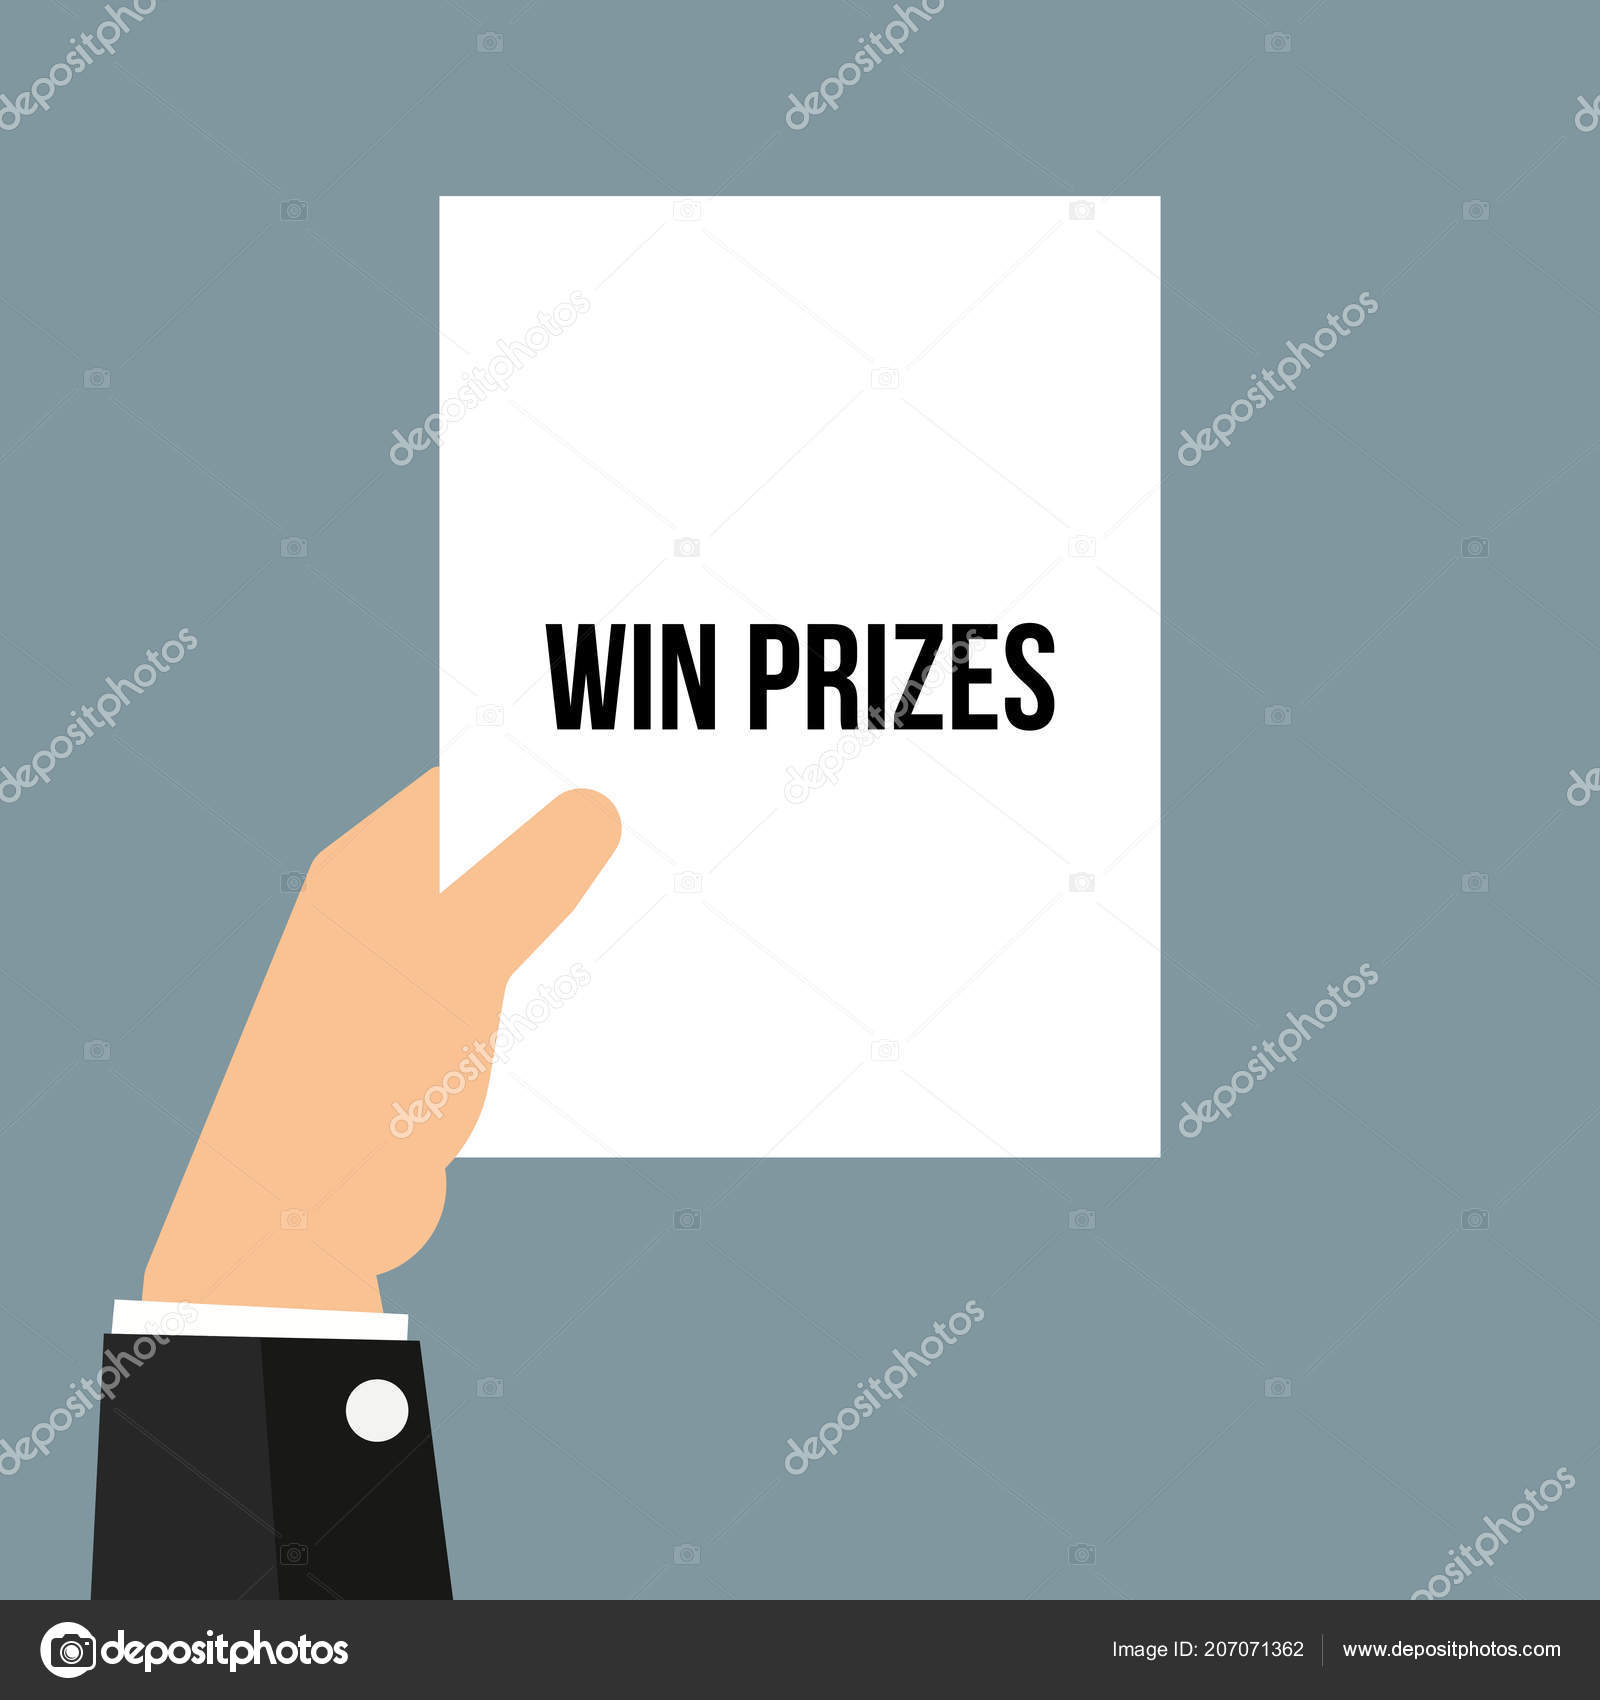 Text to win prizes